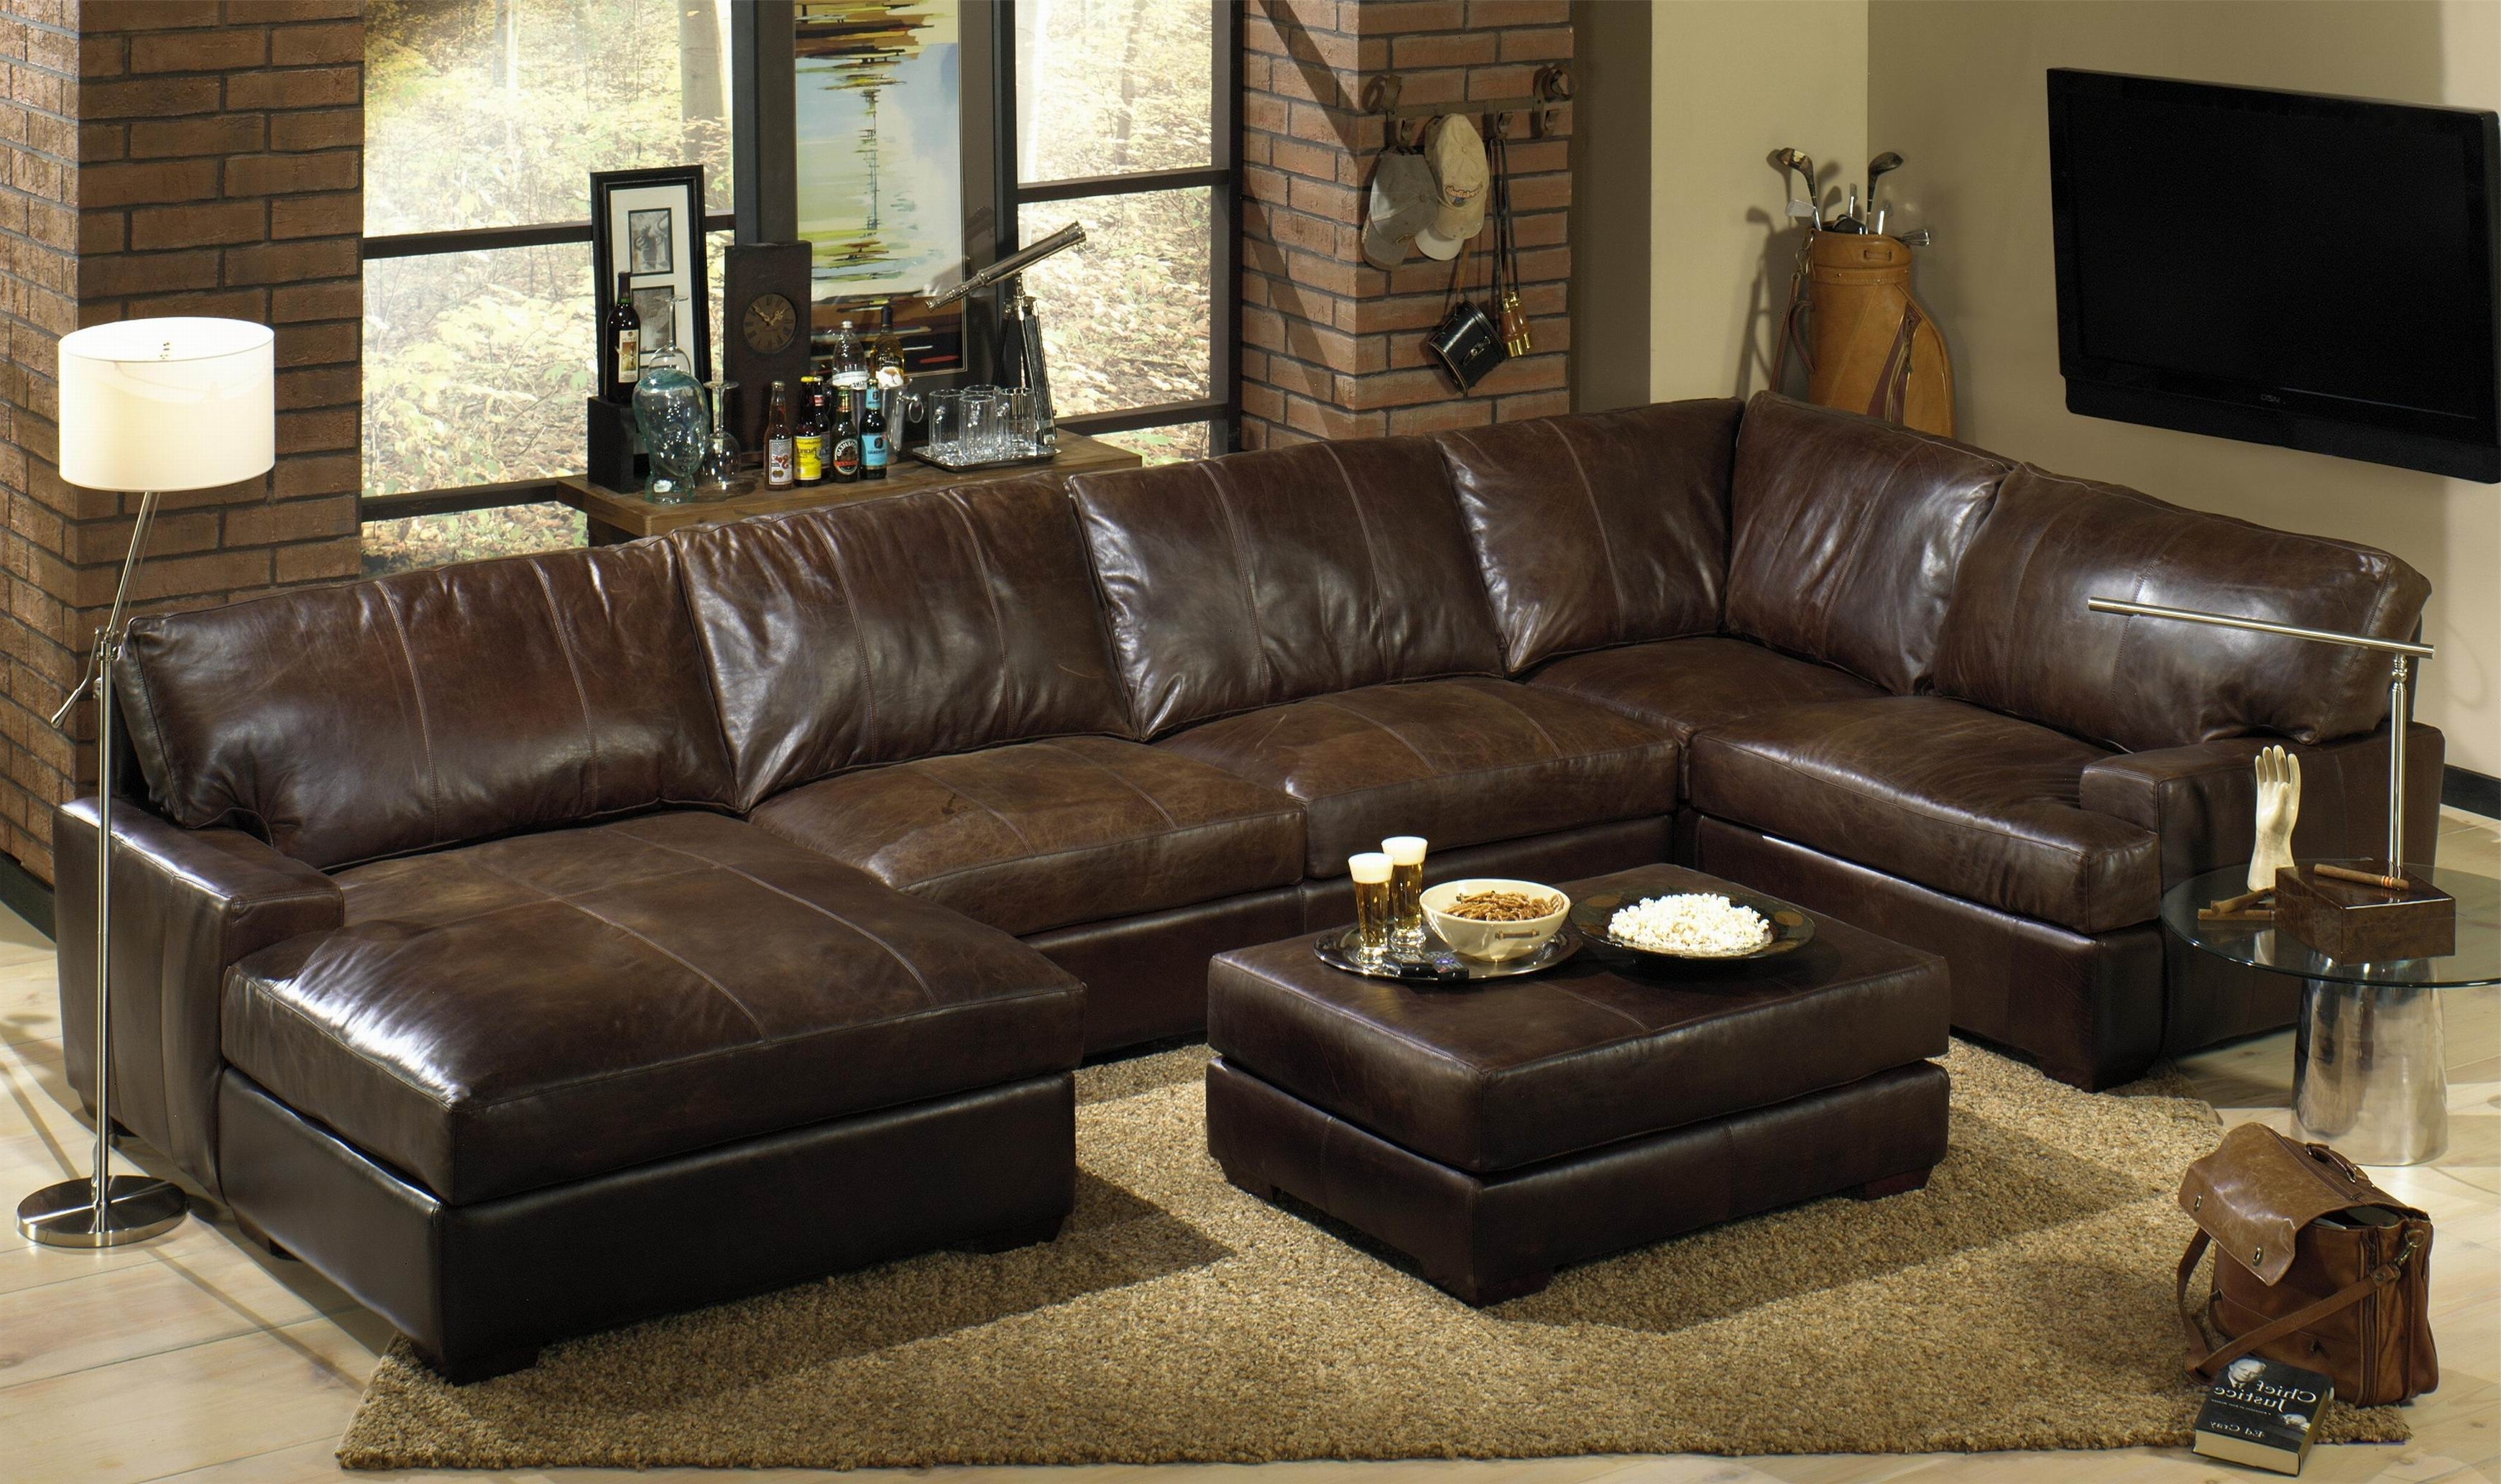 Vogue Bonded Leather Reversible Chaise Sectional Sofa Brown With Inside Most Current Leather Sectionals With Chaise And Ottoman (View 12 of 15)